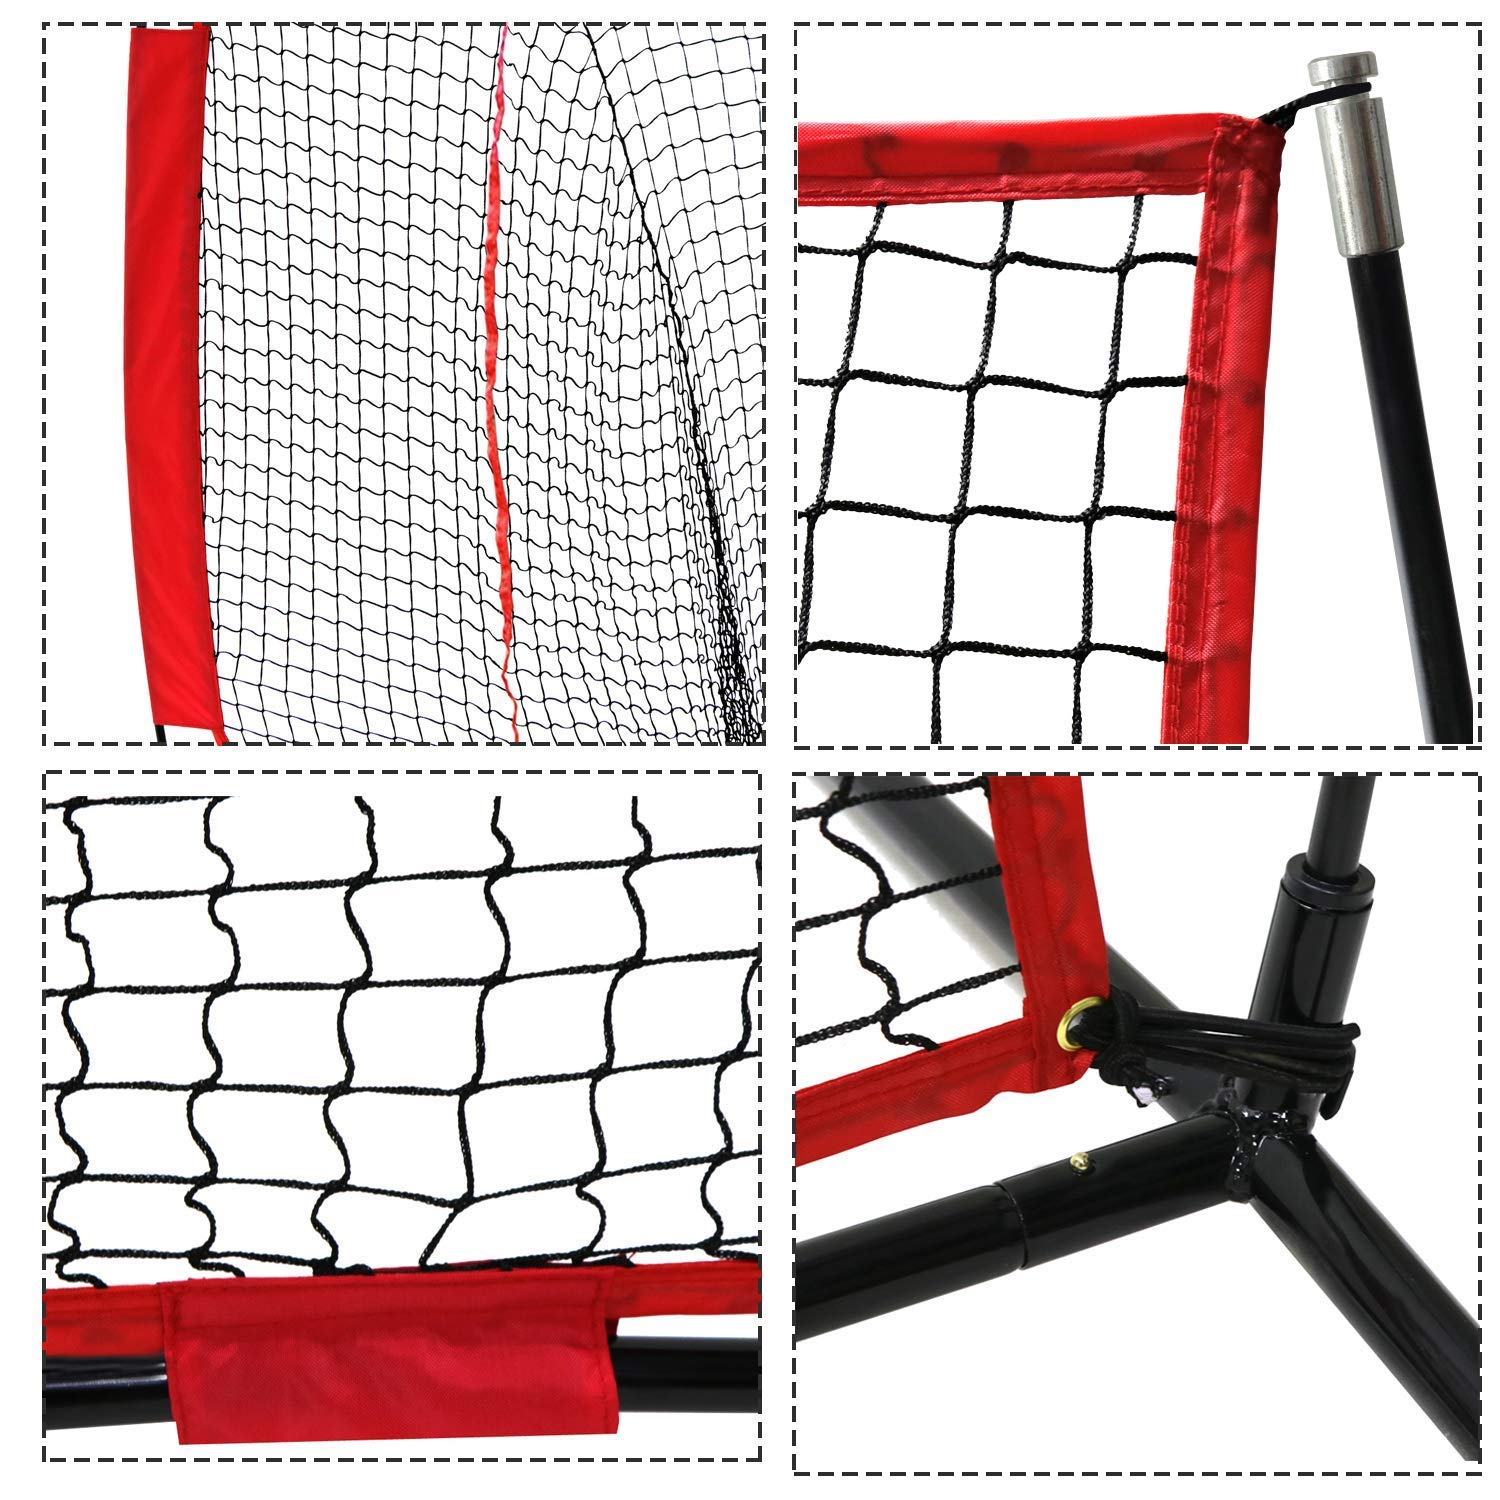 SUPER DEAL 7 7 Portable Baseball Softball Net w Carrying Bag, Metal Bow Frame Rubber Feet, for Training Hitting Batting Catching Practice